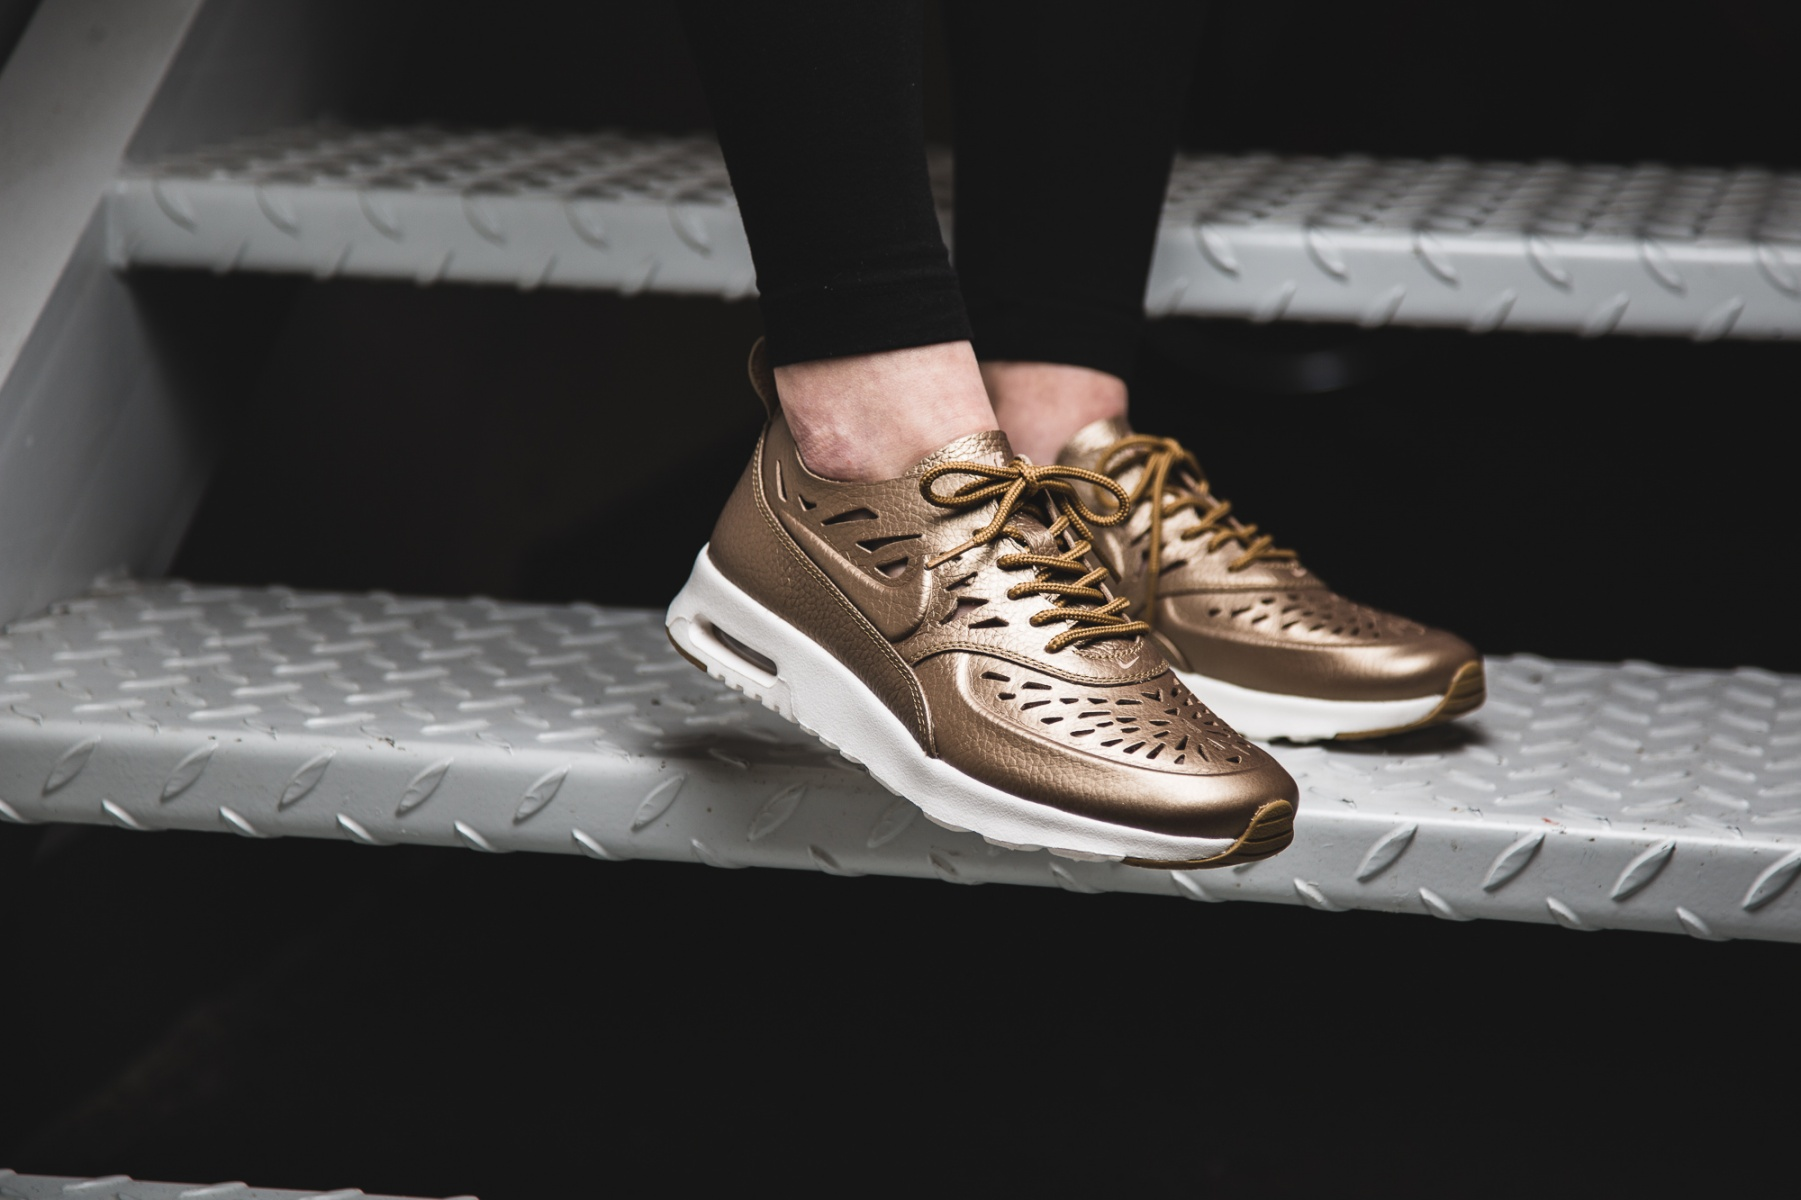 aeef02c059 Nike Air Max Thea Joli Gold - Next Level Kickz